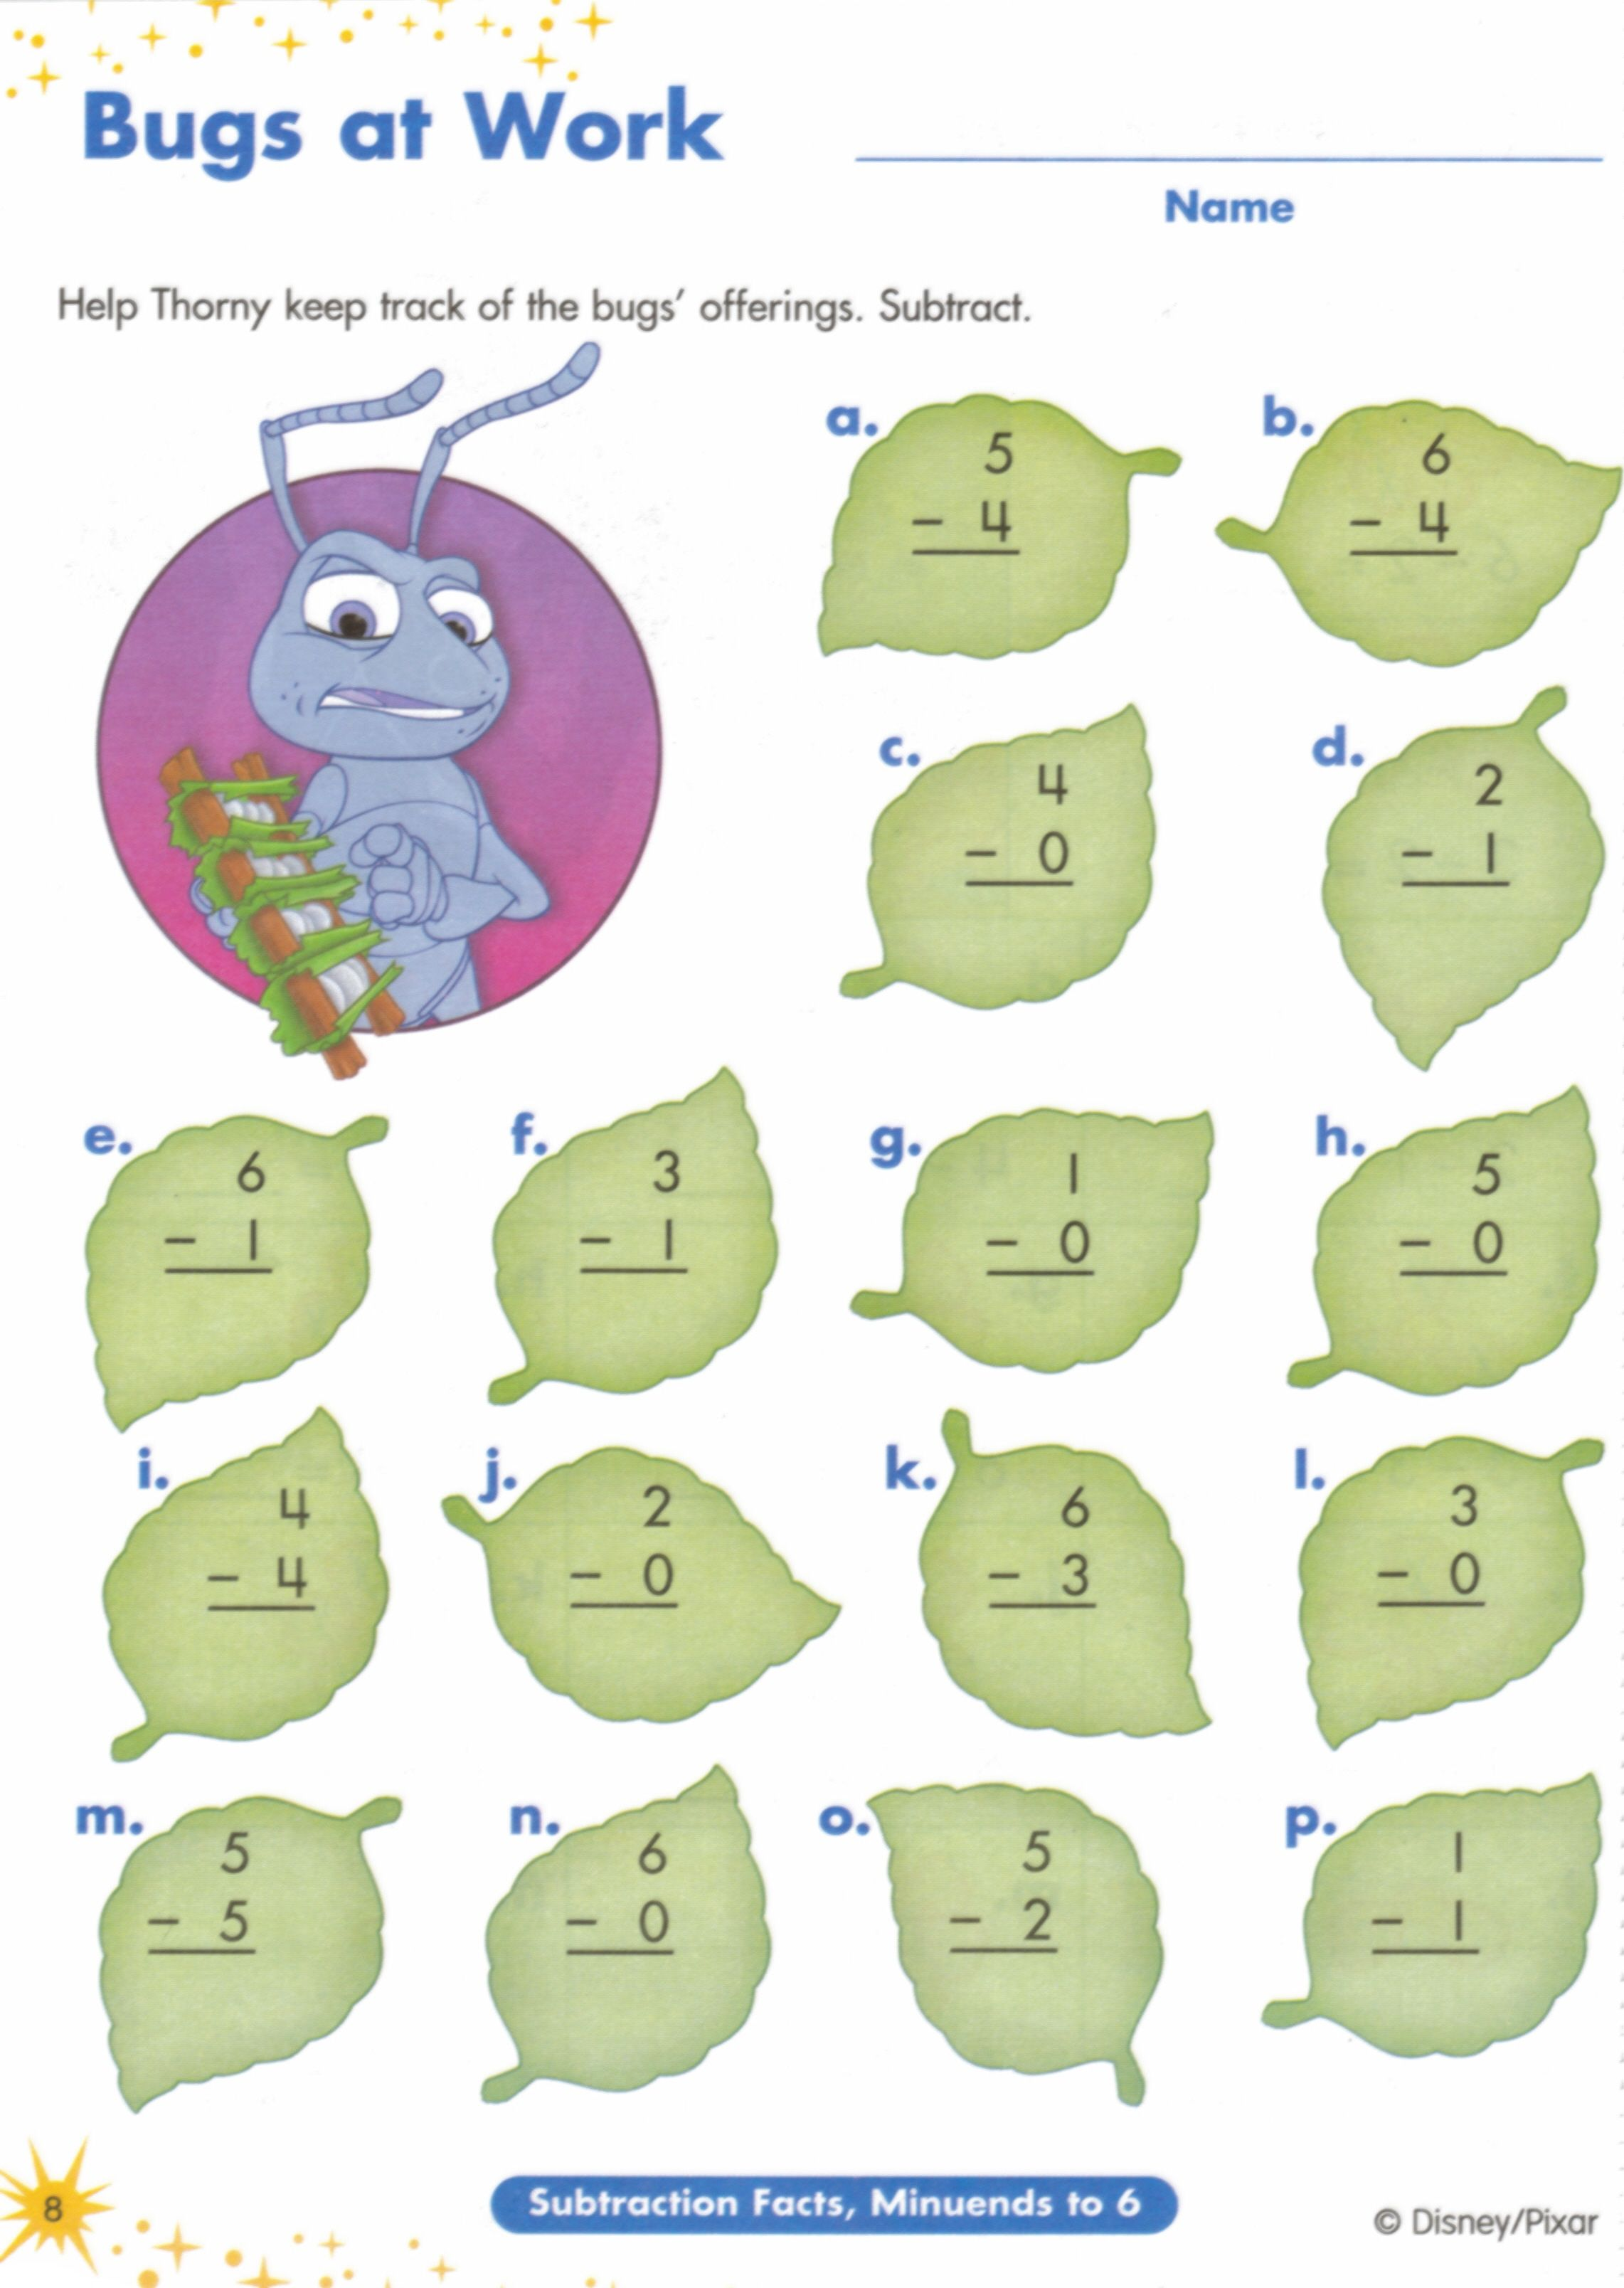 Weirdmailus  Personable  Images About Worksheets On Pinterest  Fun Facts For Kids  With Lovable  Images About Worksheets On Pinterest  Fun Facts For Kids Earth Day Worksheets And Jungles With Agreeable Parts Of Insects Worksheet Also Topic Sentence And Supporting Details Worksheets In Addition Parts Of A Short Story Worksheet And Free Printable Maths Worksheets For Year  As Well As Safety Worksheets For Students Additionally Word Family Printable Worksheets From Pinterestcom With Weirdmailus  Lovable  Images About Worksheets On Pinterest  Fun Facts For Kids  With Agreeable  Images About Worksheets On Pinterest  Fun Facts For Kids Earth Day Worksheets And Jungles And Personable Parts Of Insects Worksheet Also Topic Sentence And Supporting Details Worksheets In Addition Parts Of A Short Story Worksheet From Pinterestcom